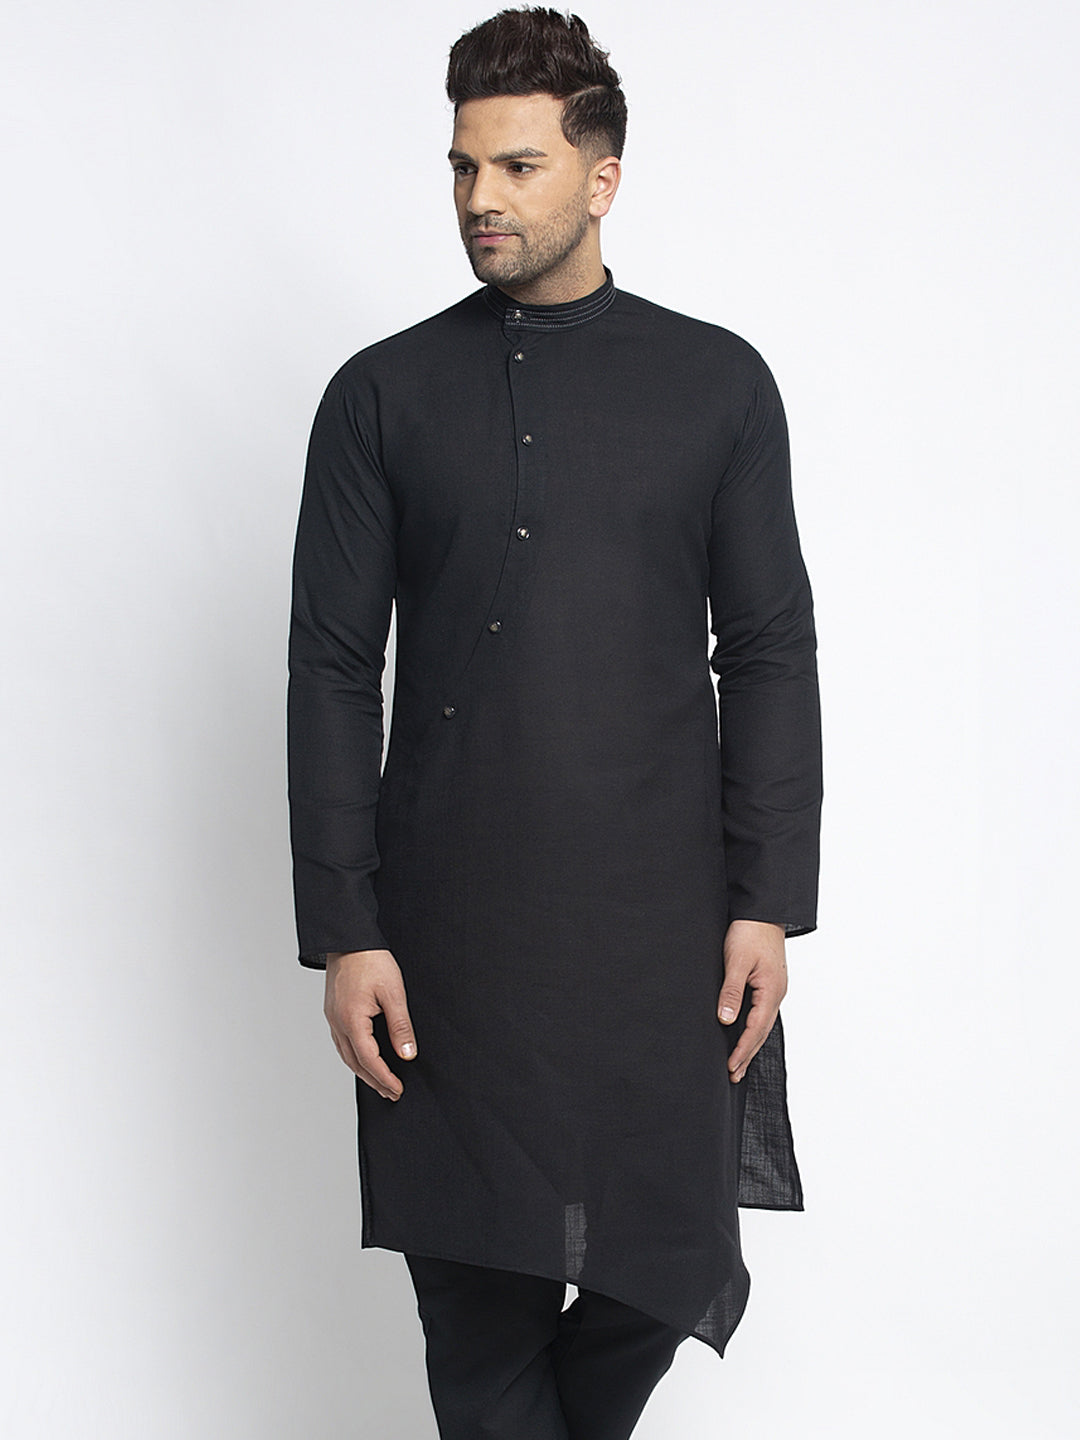 Designer Black Linen Kurta For Men By Treemoda